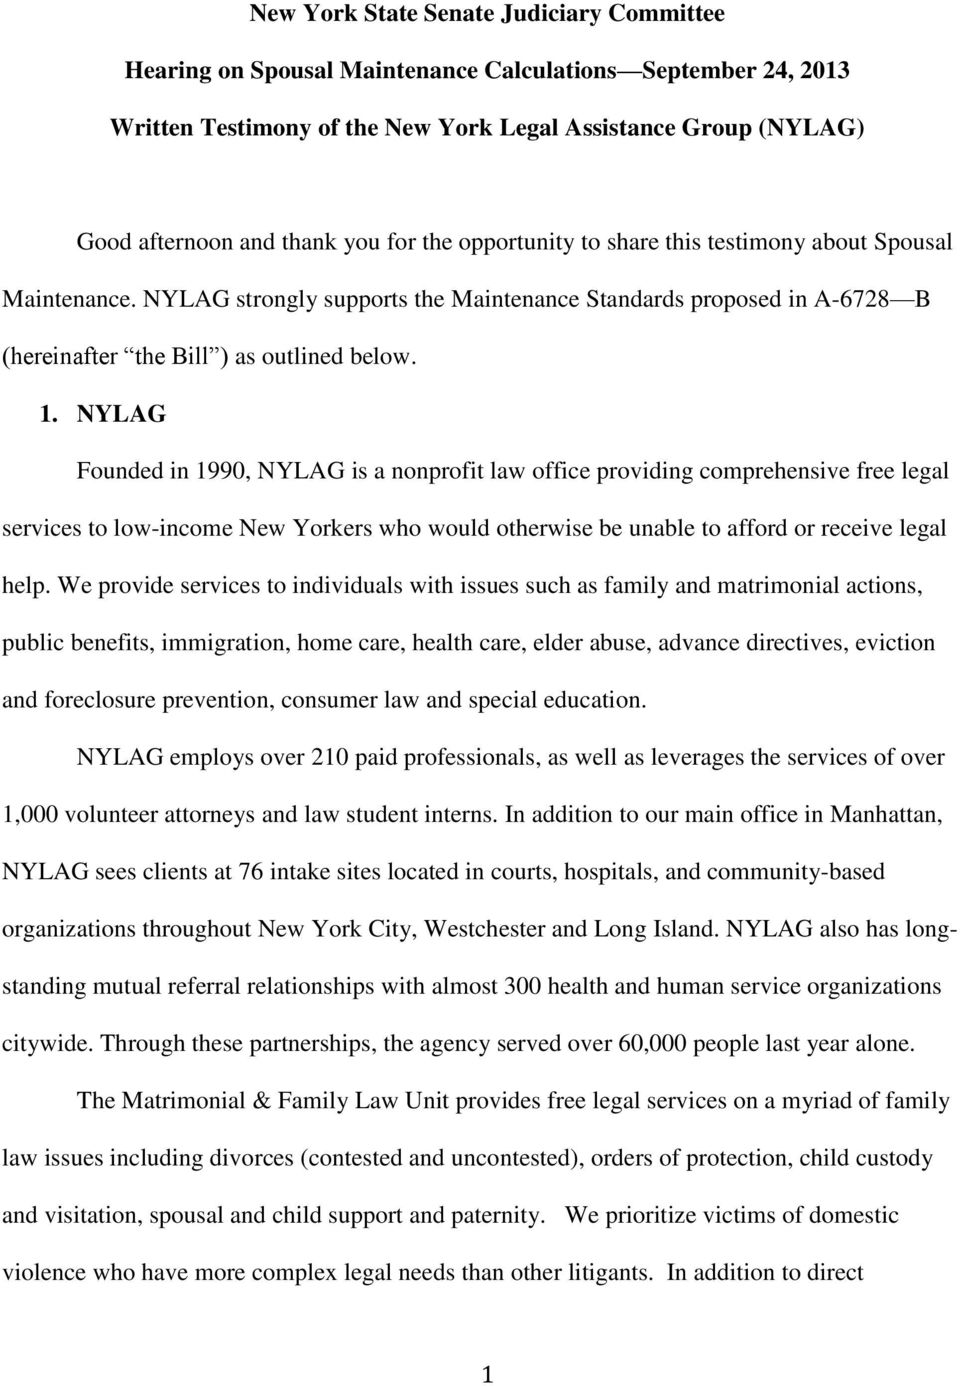 NYLAG Founded in 1990, NYLAG is a nonprofit law office providing comprehensive free legal services to low-income New Yorkers who would otherwise be unable to afford or receive legal help.